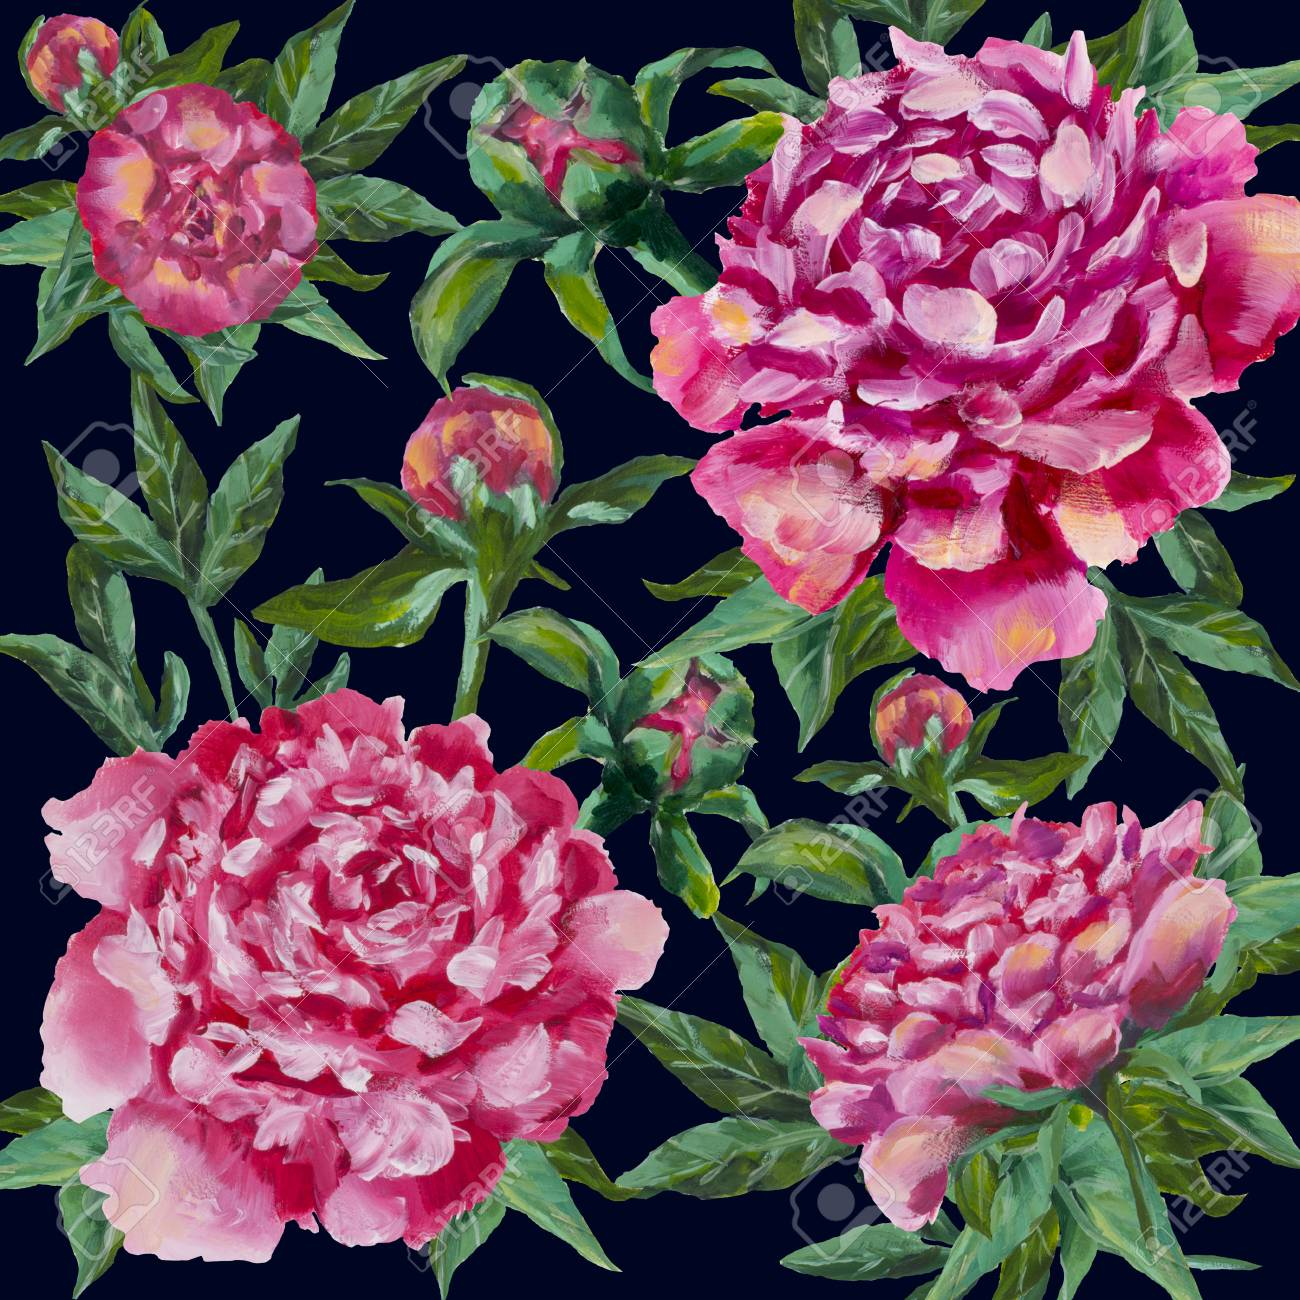 Peonies Flowers Design Oil Painting Pink Peony Roses With Green